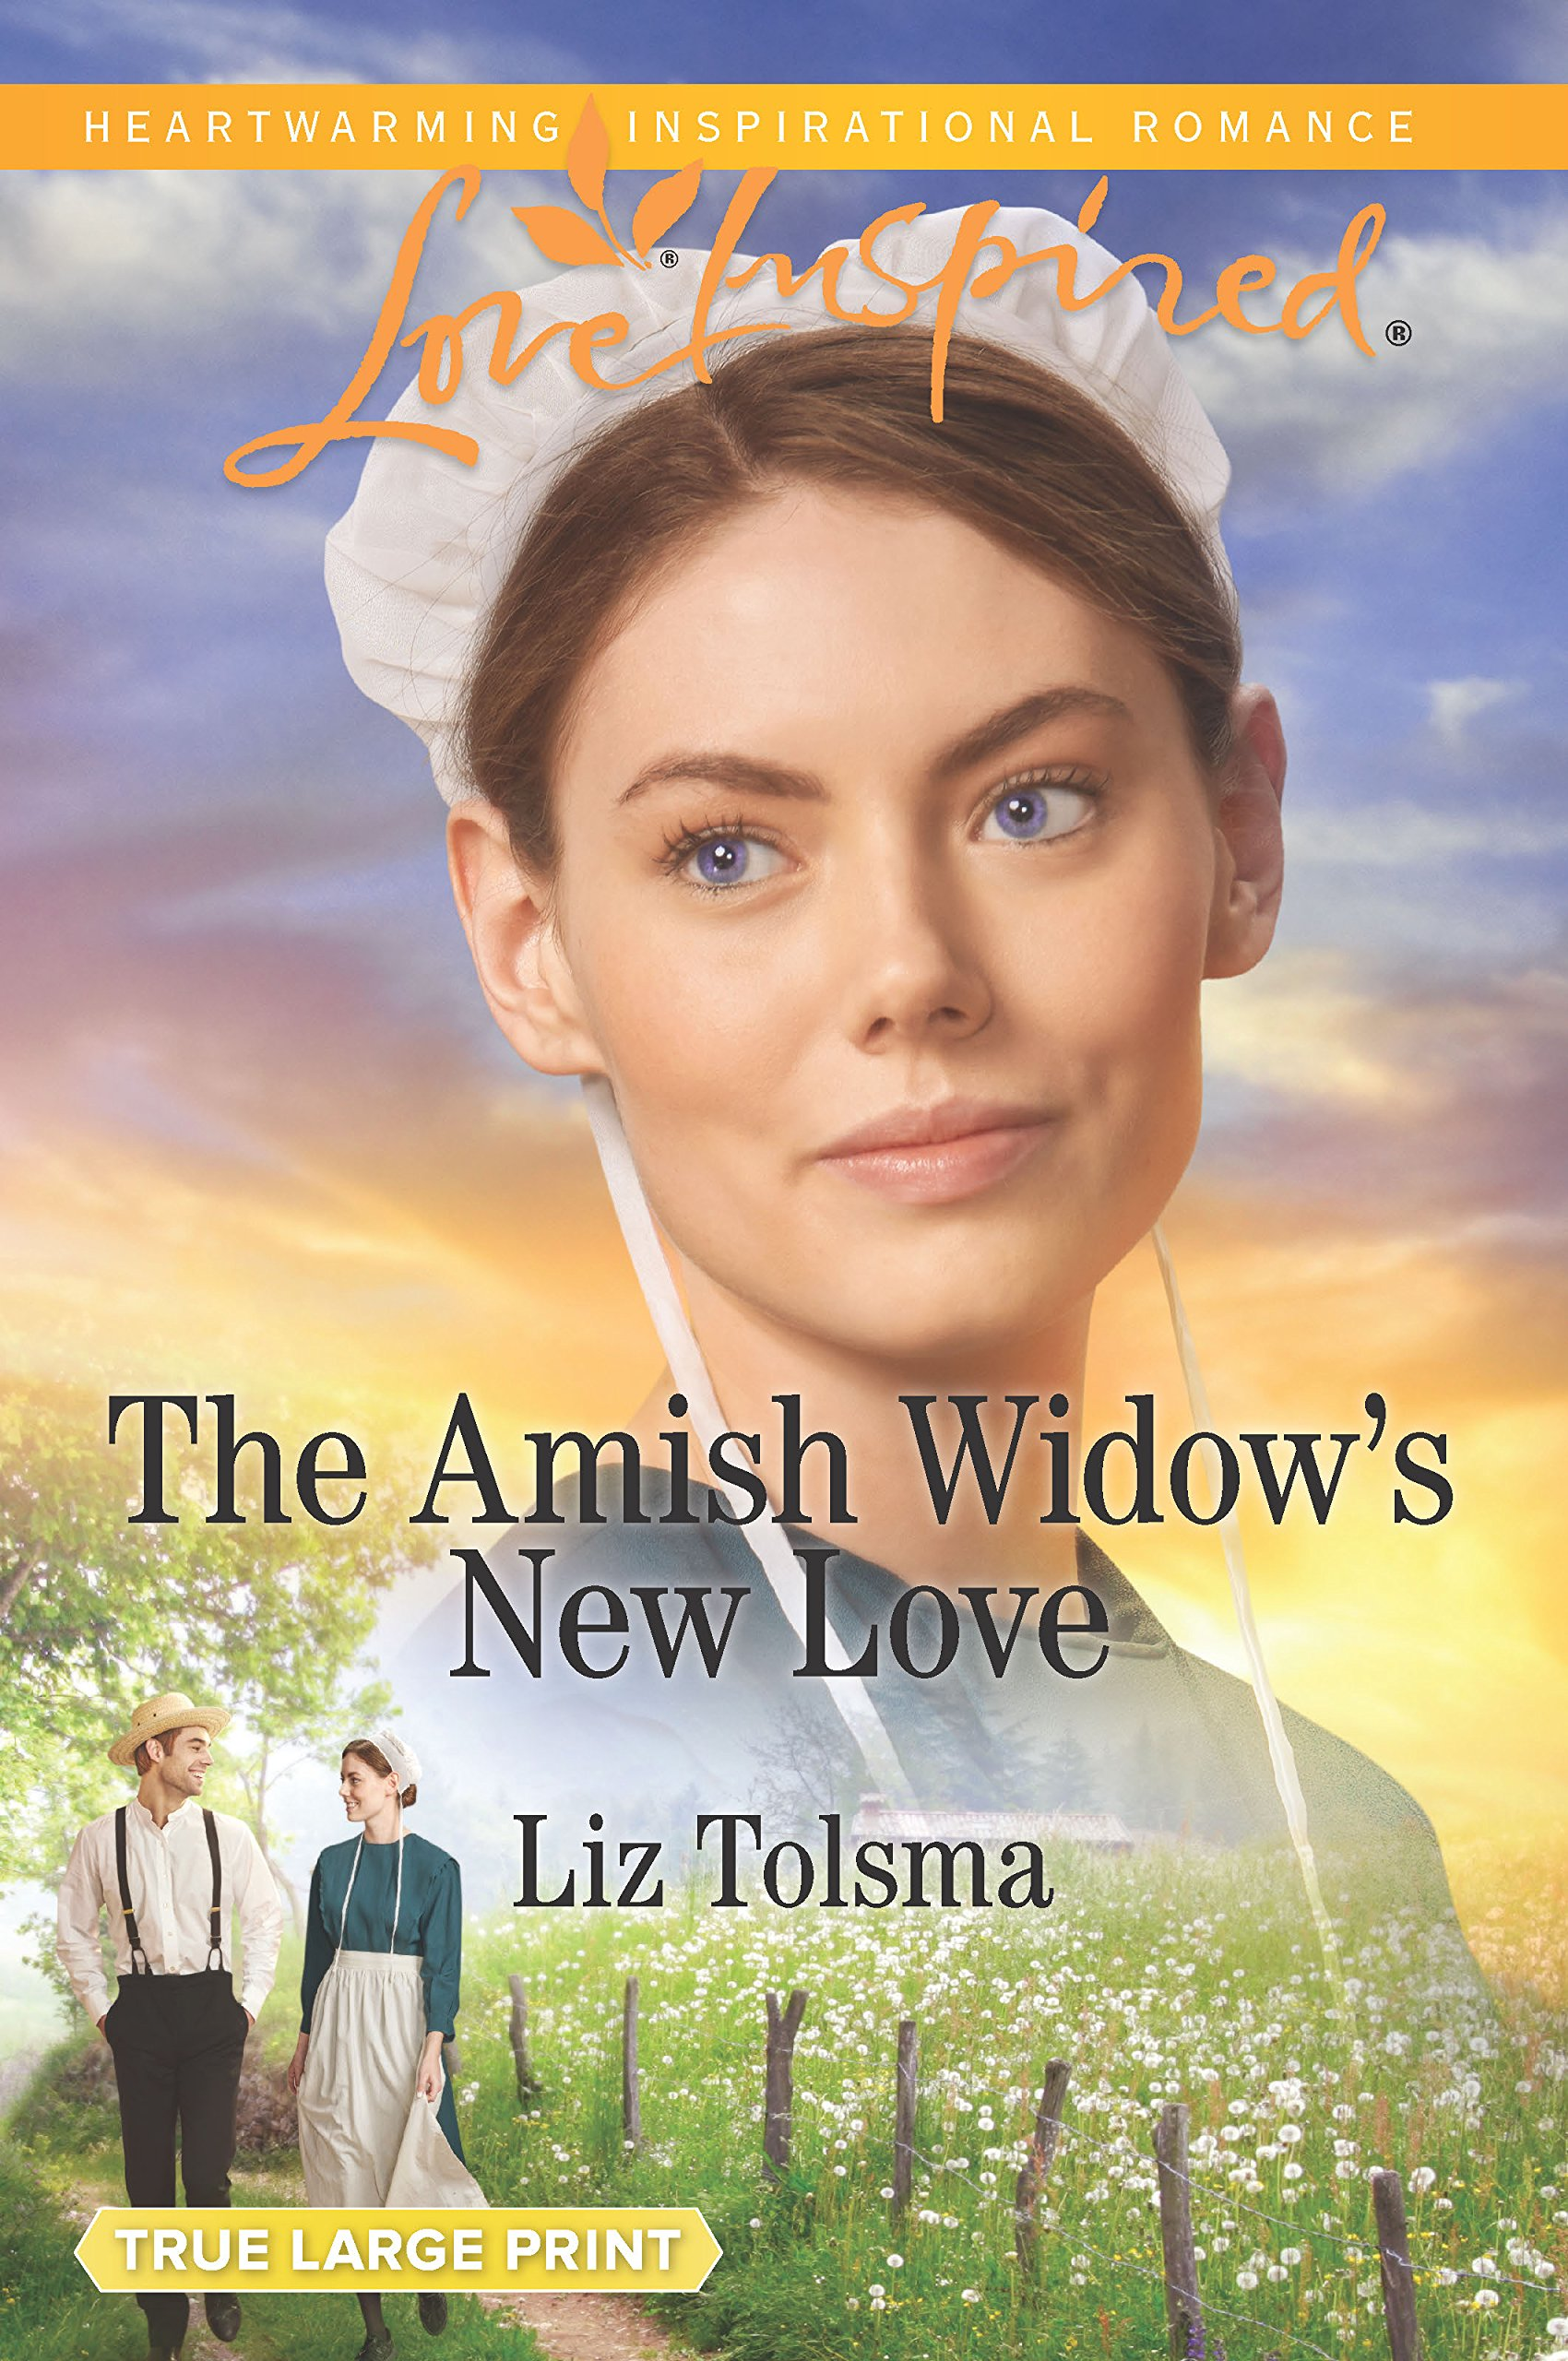 The Amish Widow's New Love by Love Inspired